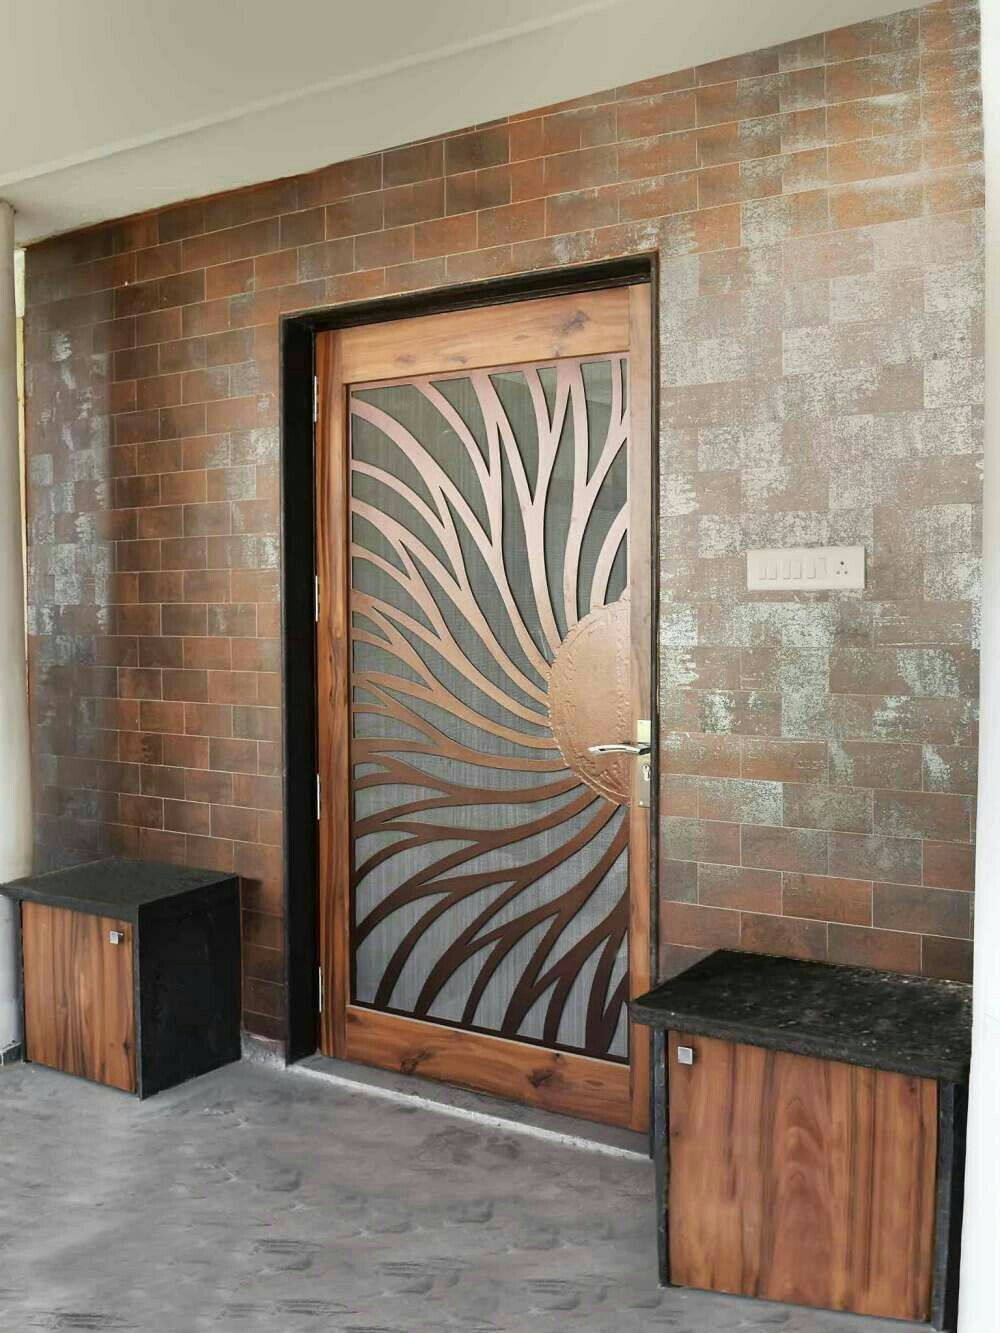 Main Door Design Door Design Modern Wood: Sunshine Or Flower Inspired Door?